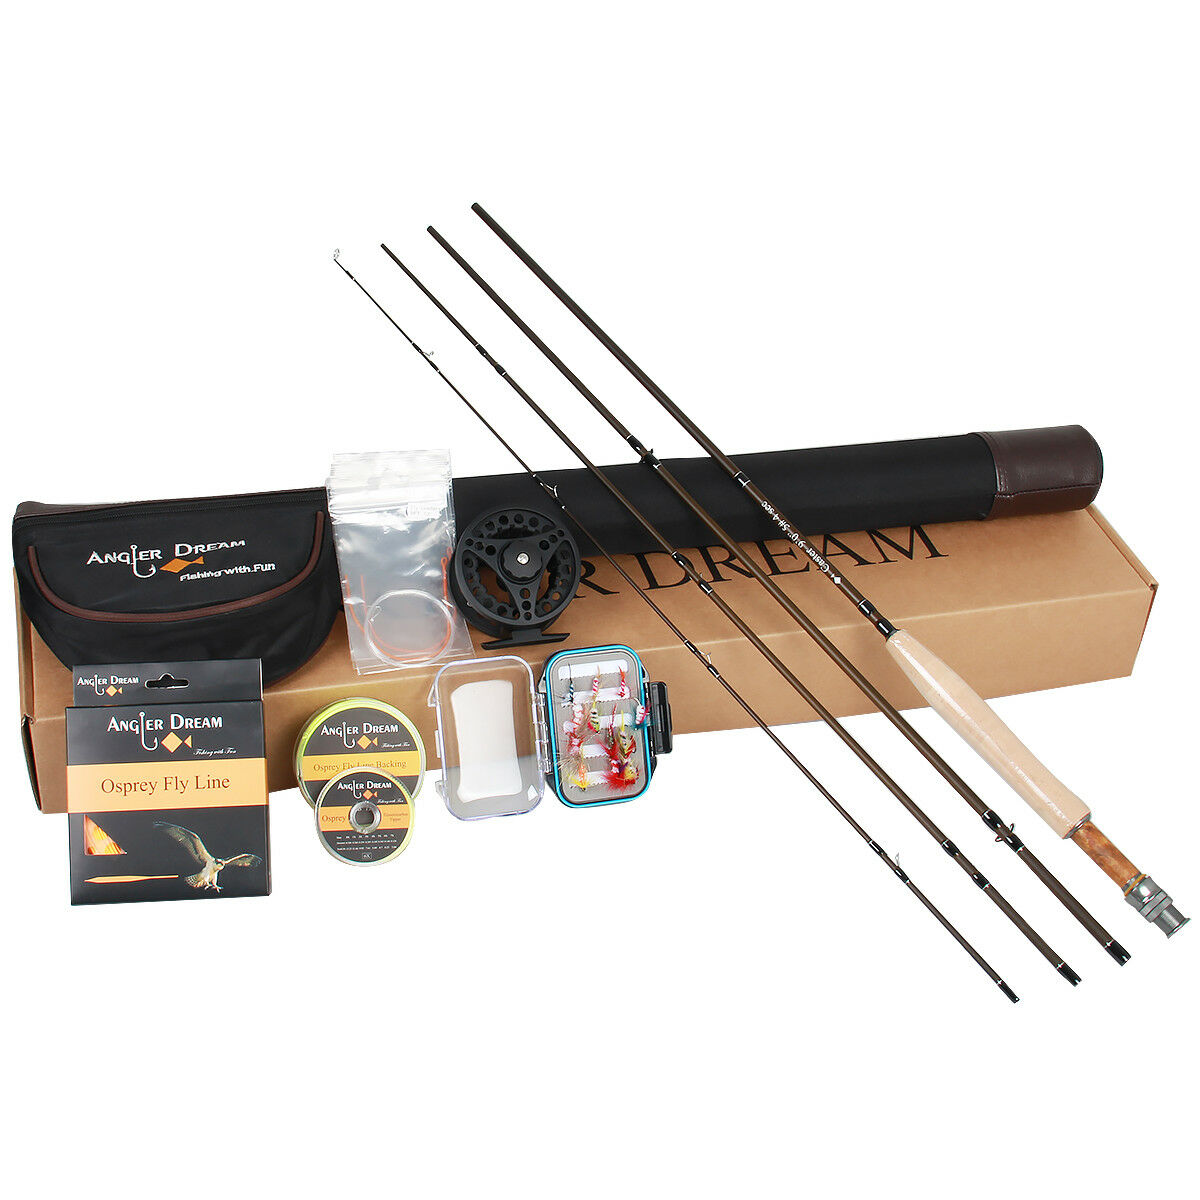 Fly Fishing Combo 3 5 8WT Fly Rod With Fly Reel Kit Fly Reel Fly Line Tube Flies